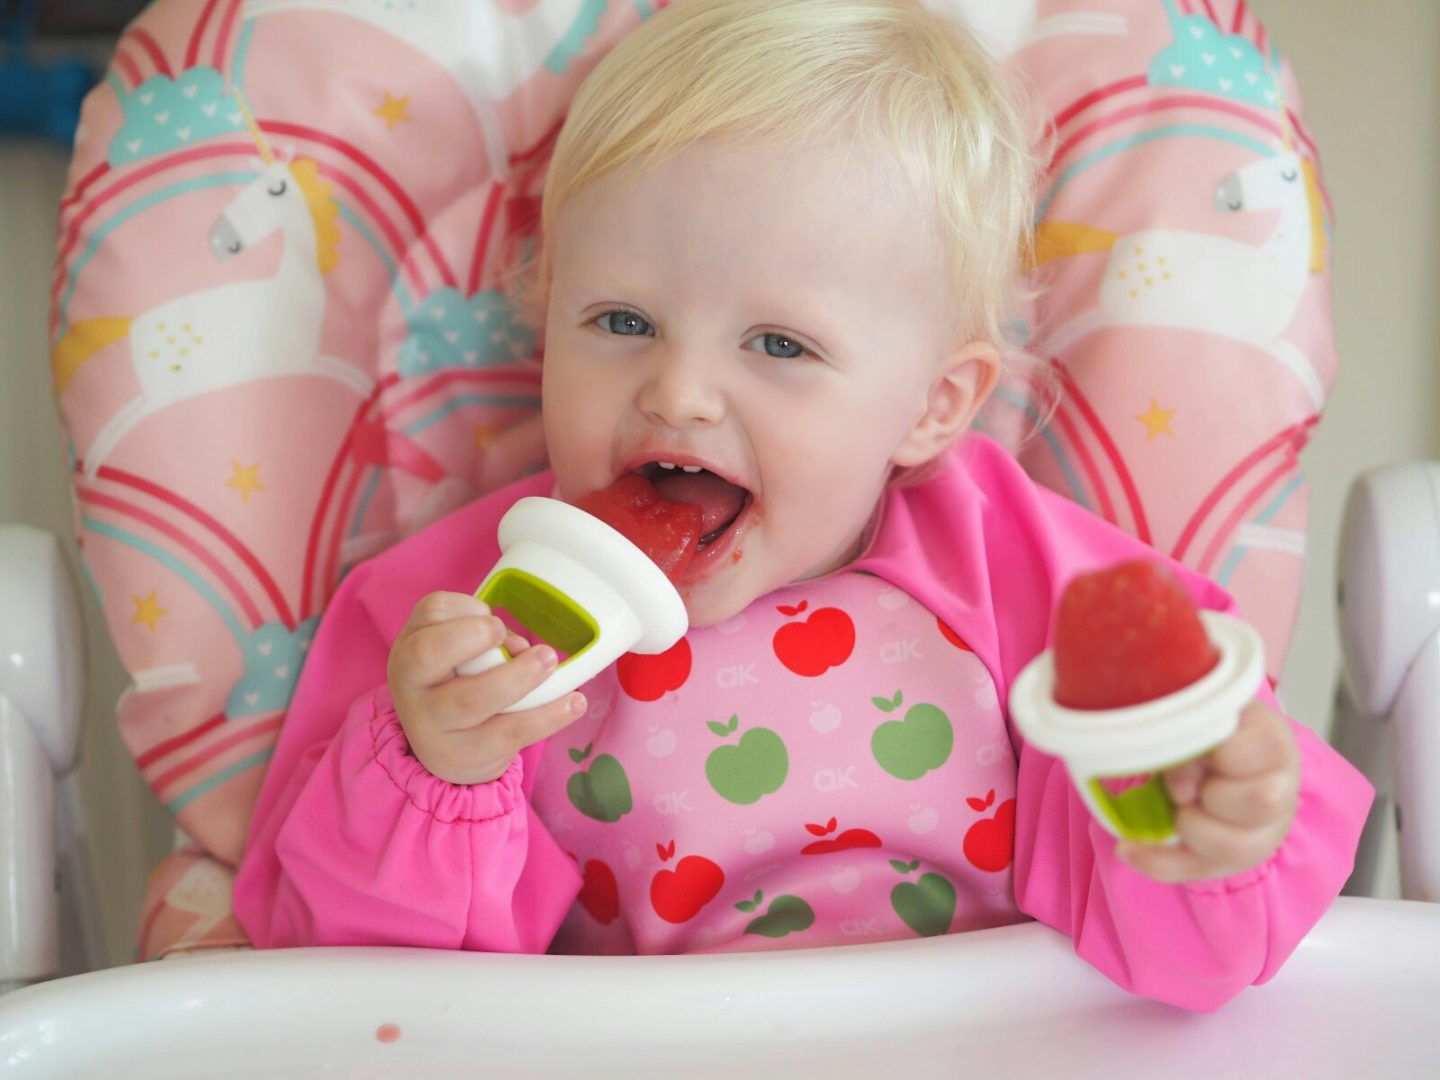 Weaning: 5 Things I'd do differently next time